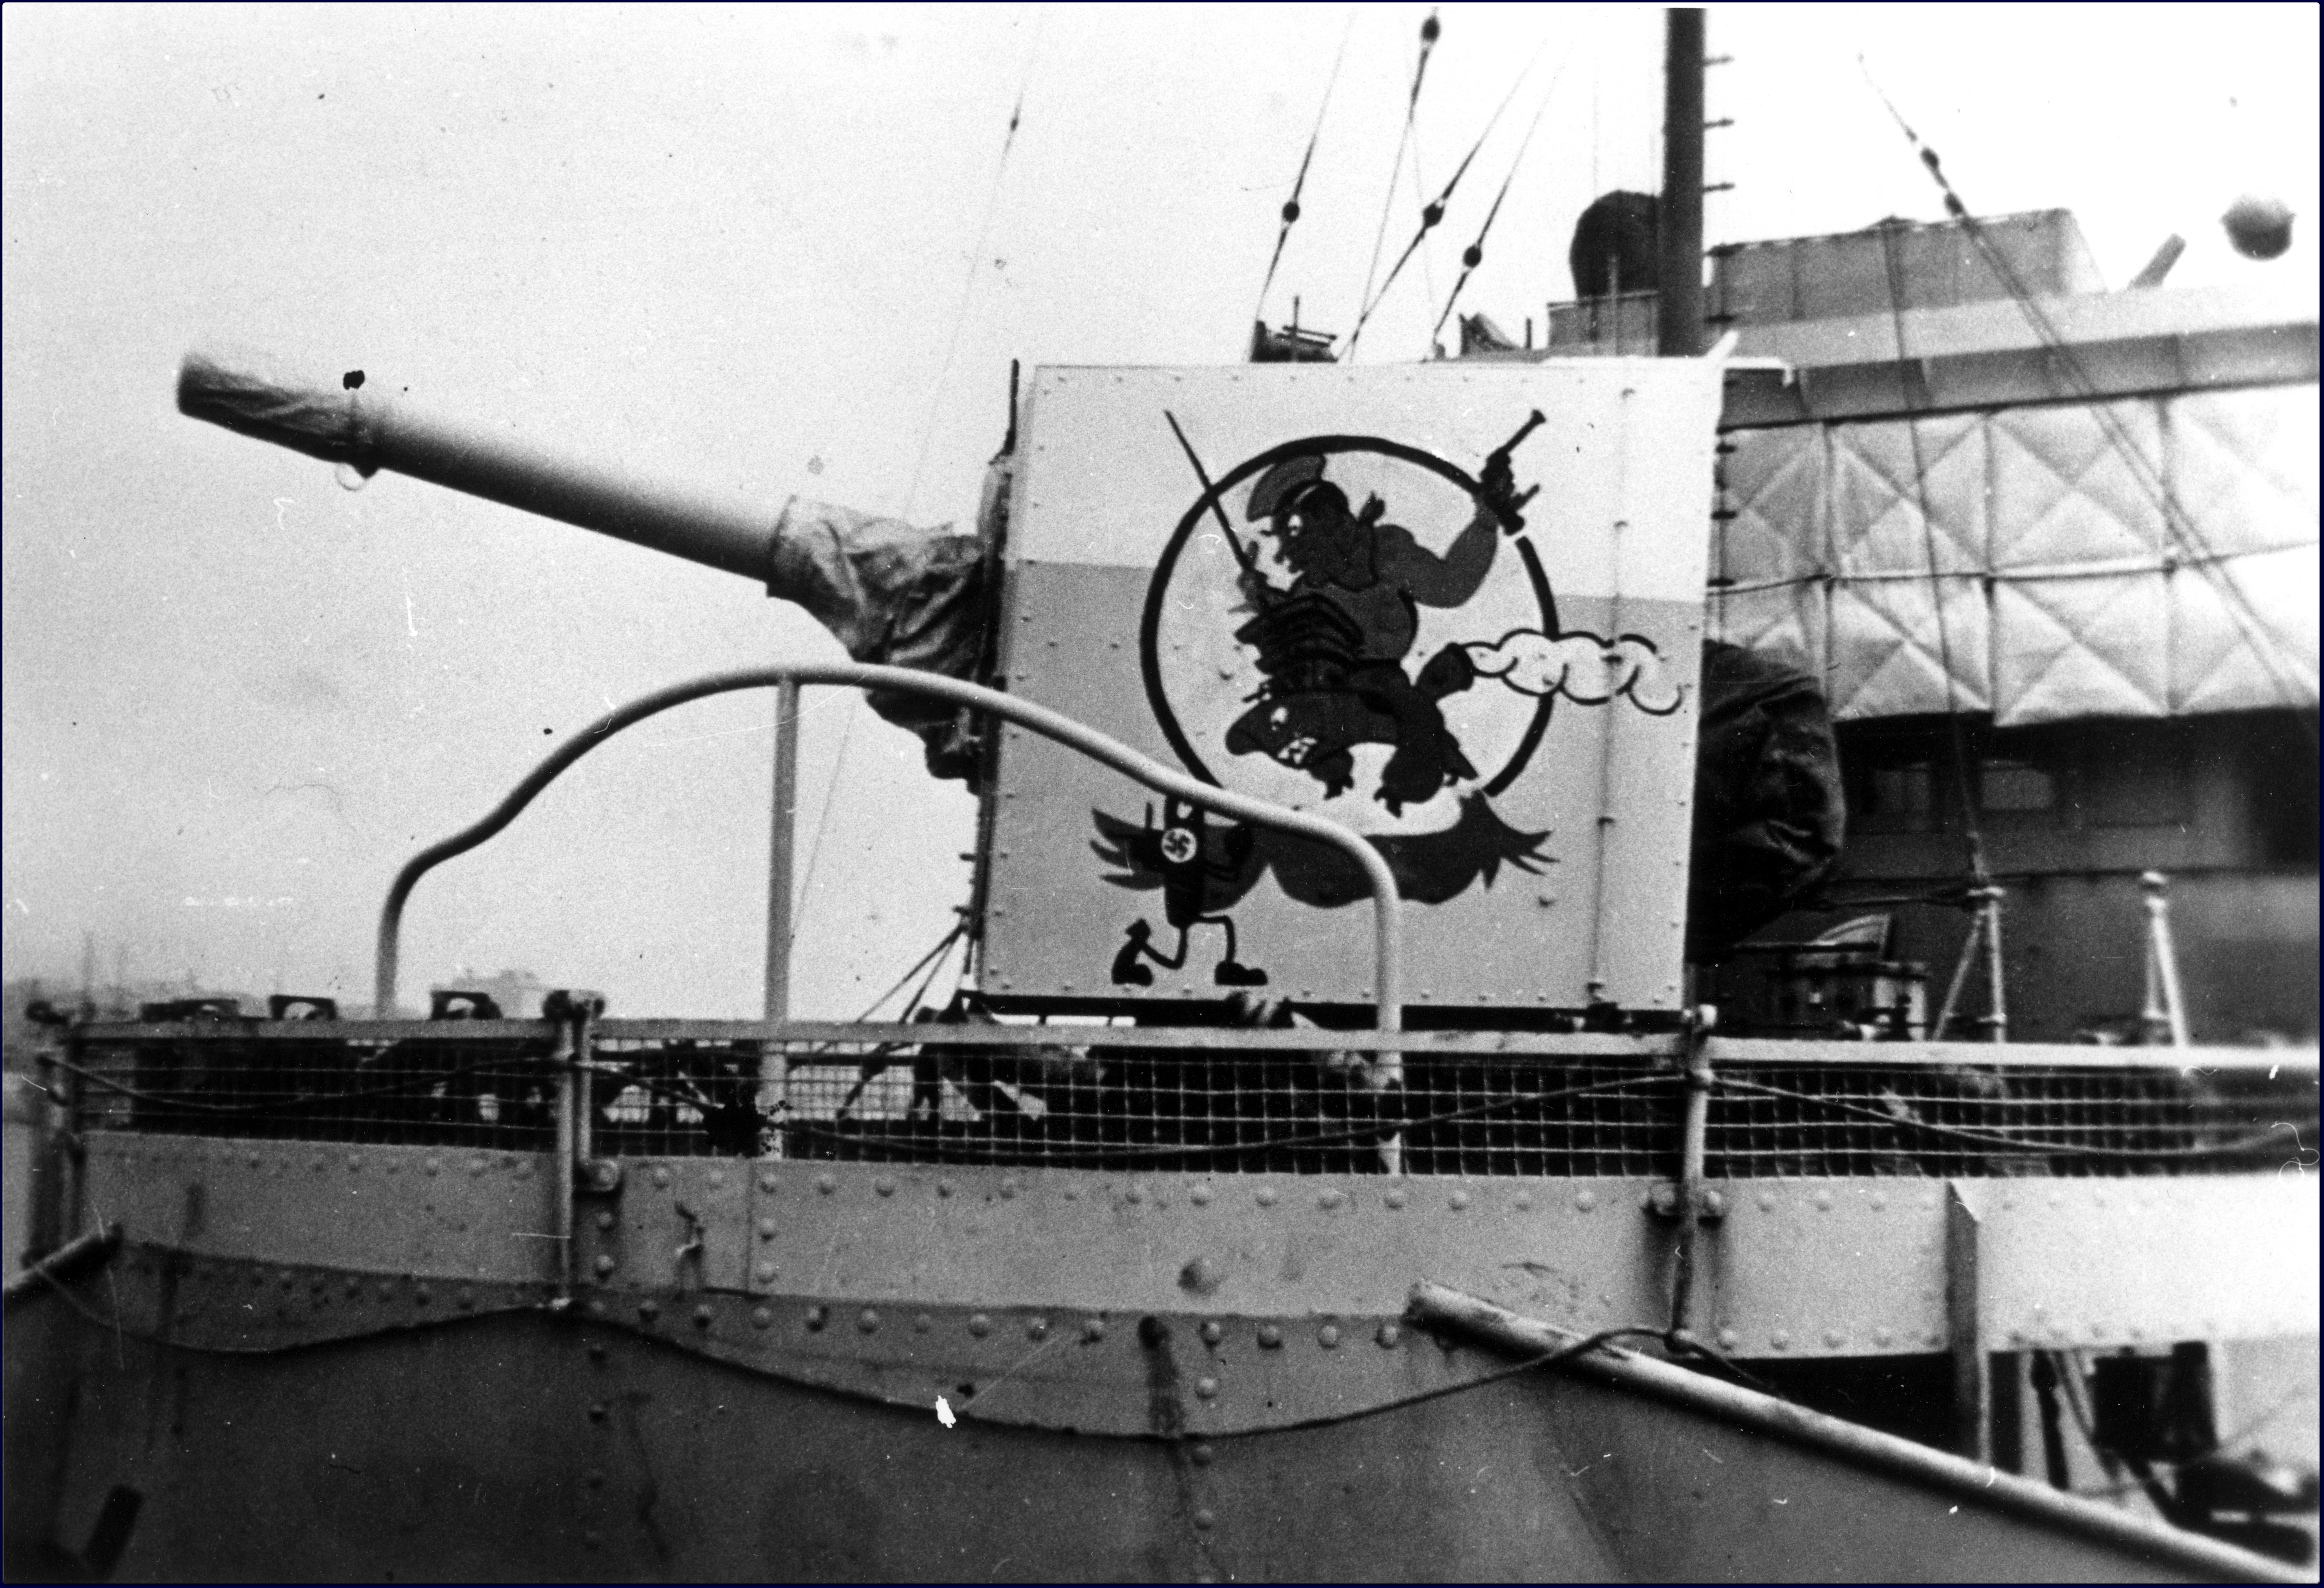 facts on world war ii as the largest naval war in history Naval history of world war ii  japanese kamikaze pilots exacted the largest loss of ships in us naval history with the sinking of 38 and the damaging of another .